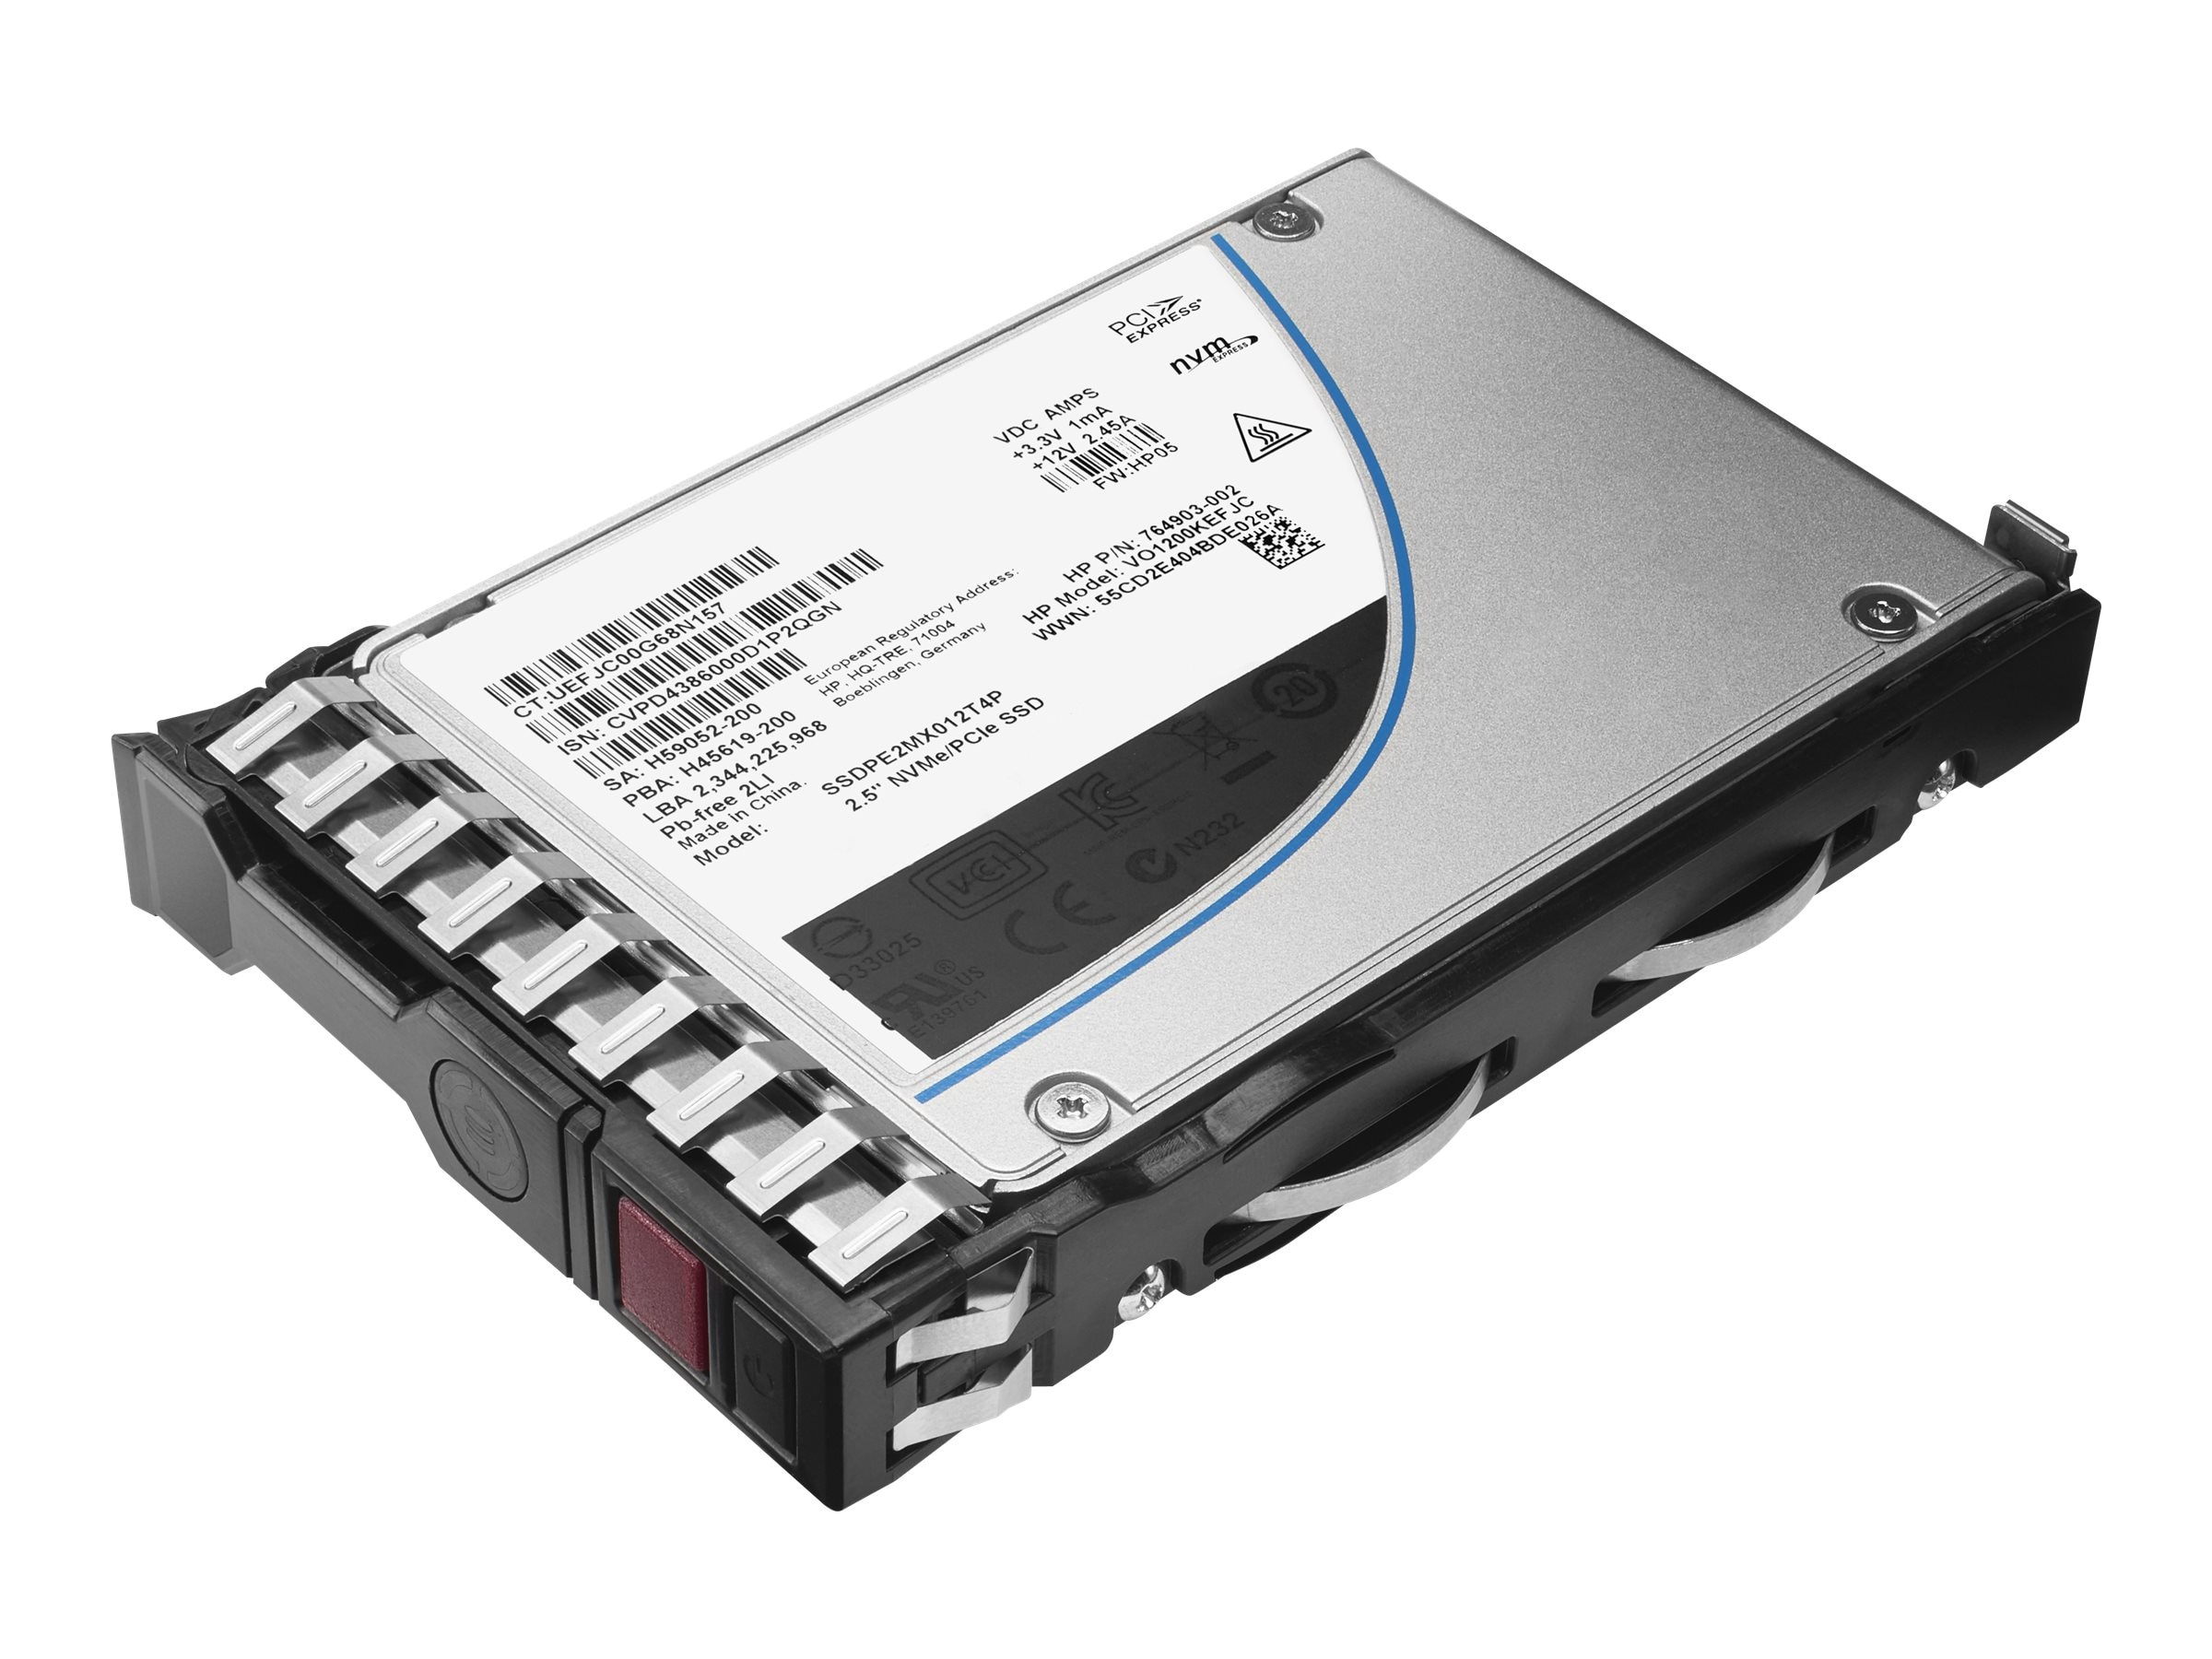 HPE 1.6TB SAS 12Gb s Value Endurance 3.5 LPC Enterprise Performance Solid State Drive